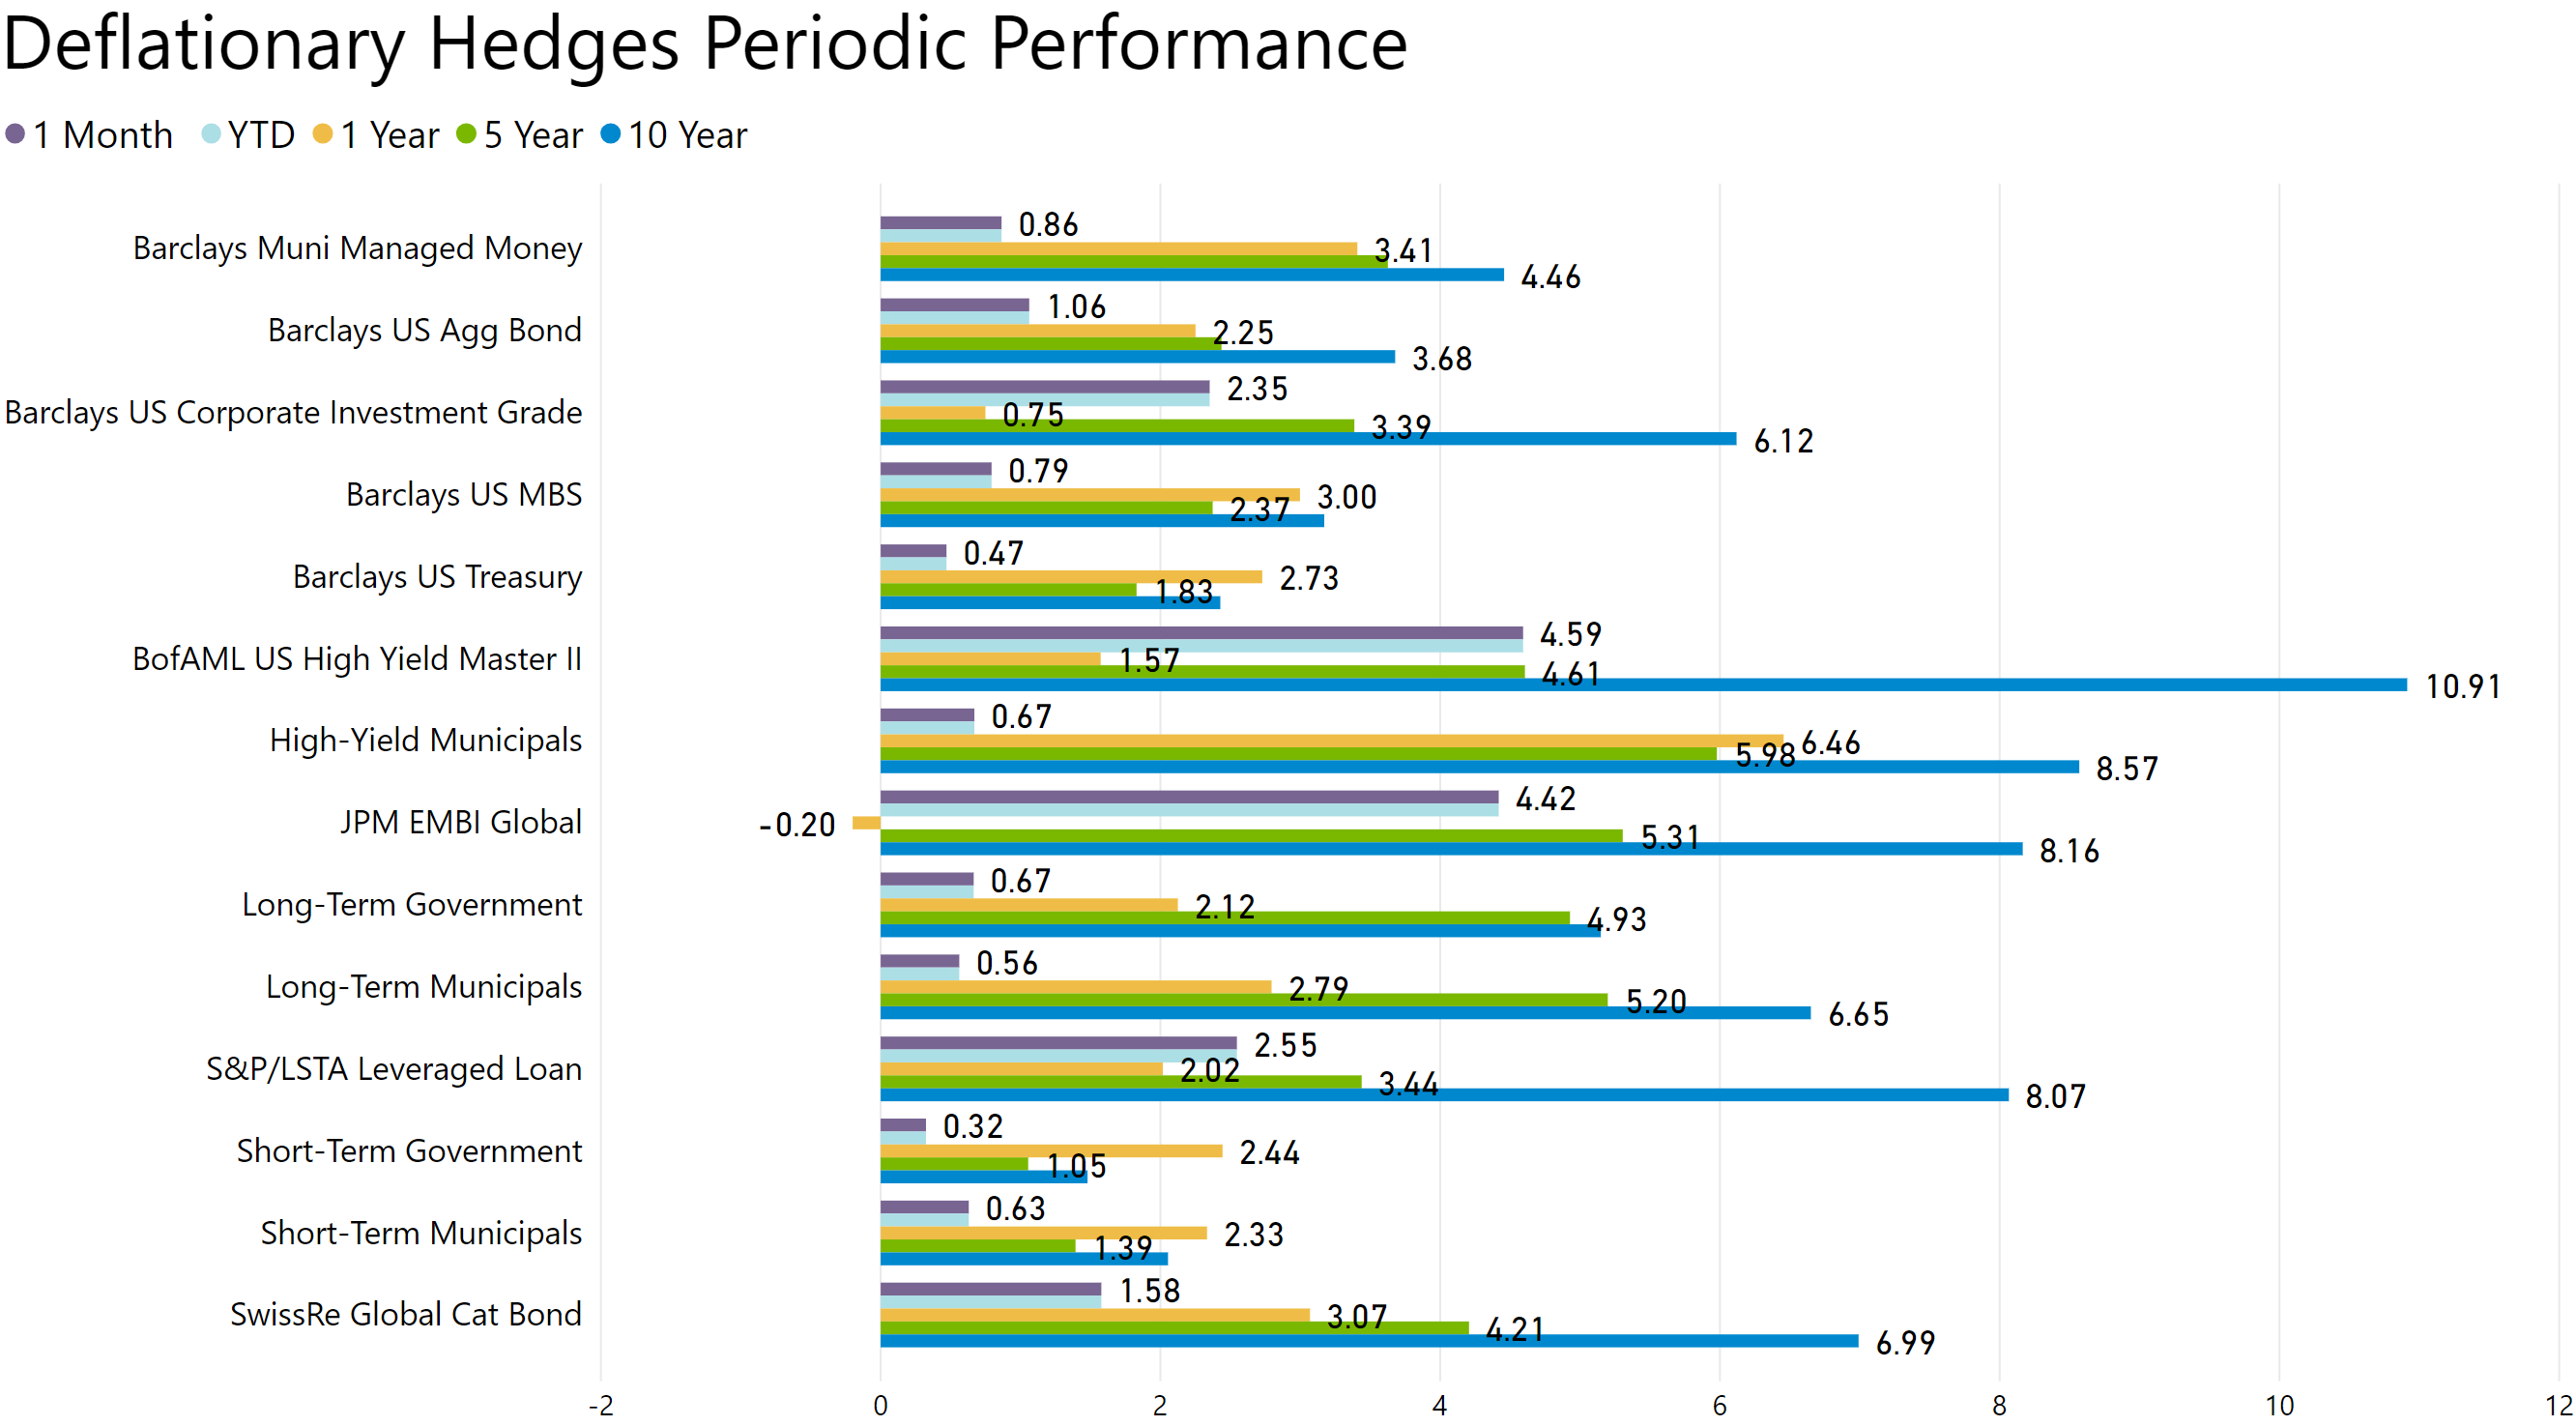 deflationary hedges performance